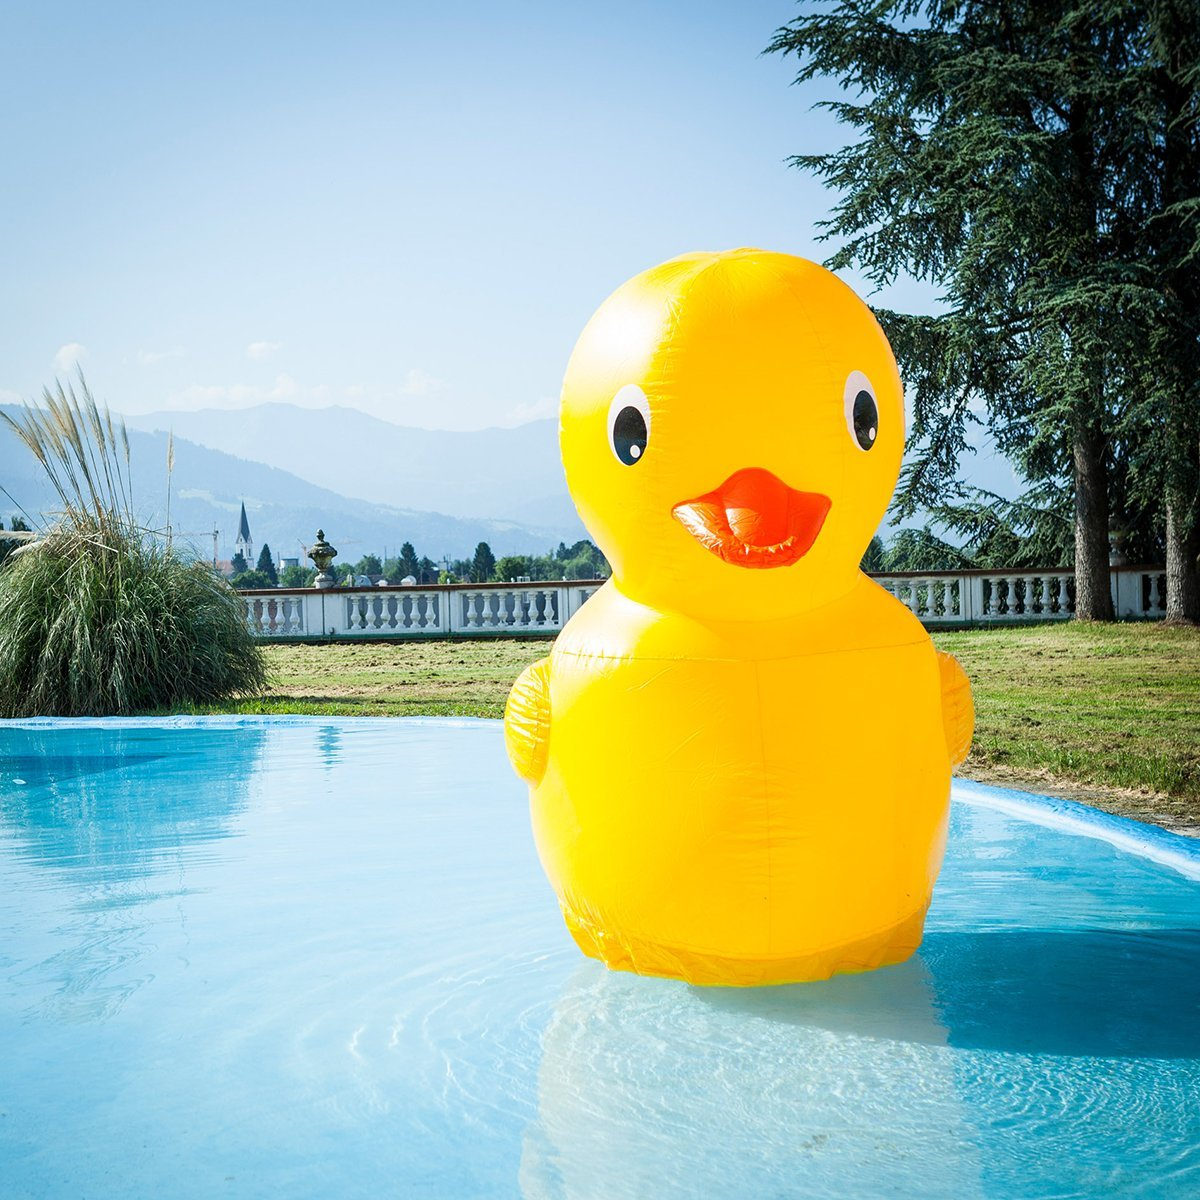 Giant Inflatable Rubber Ducky 187 Petagadget